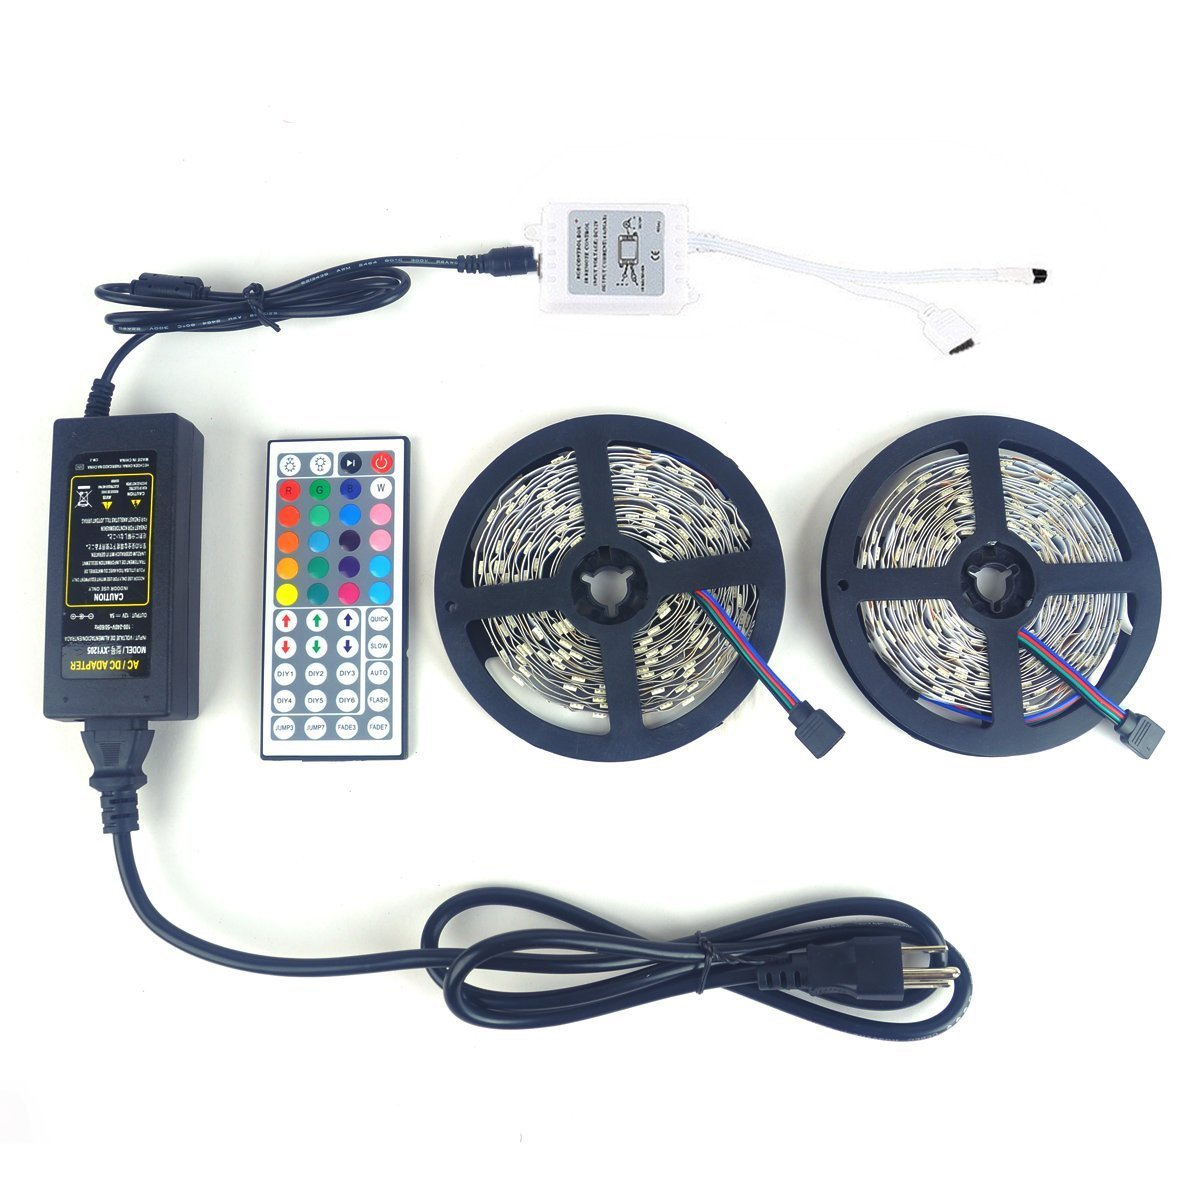 LEDNICEKER 2 Reels 5050 LED Strip Lights - 32.8ft / 10M Flexible 5050 RGB LED Light With 44key LED Controller and DC 12V5A Power Adapter